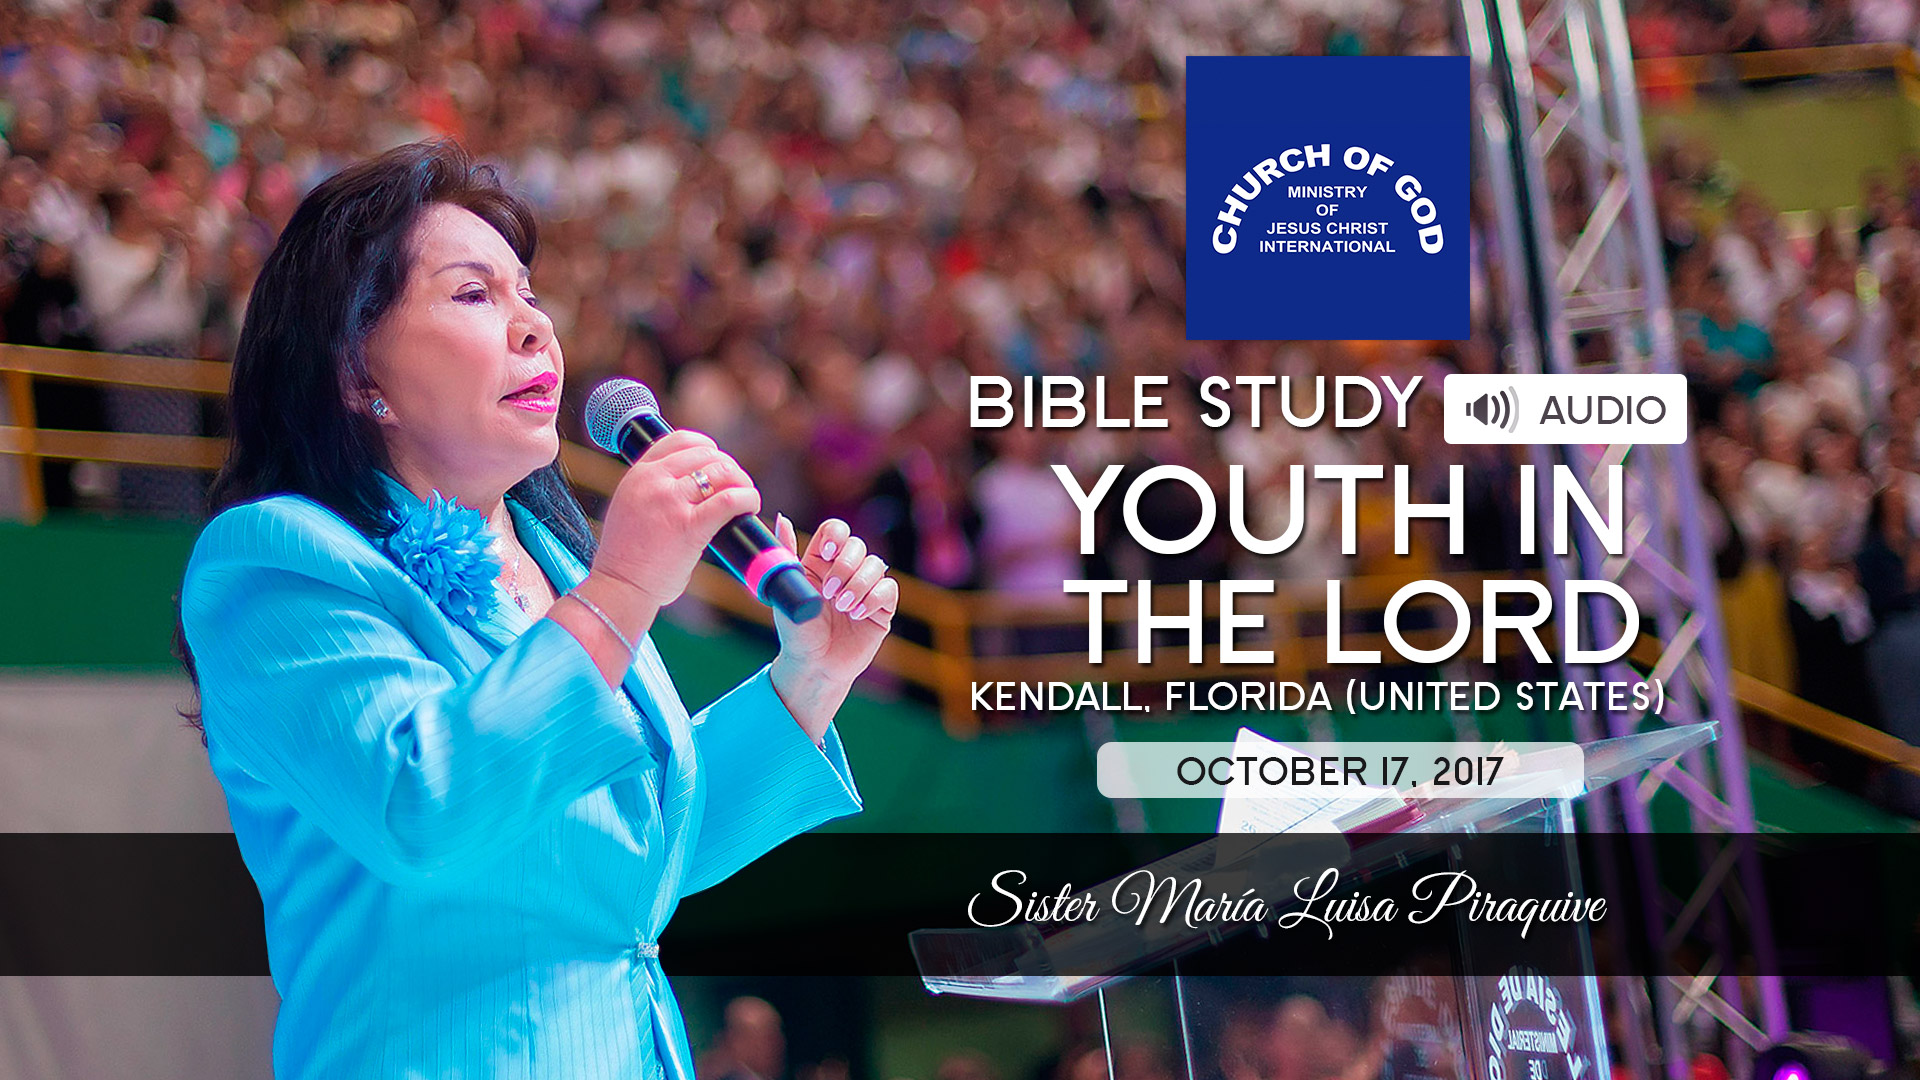 Bible Study: Youth in The Lord (Audio)